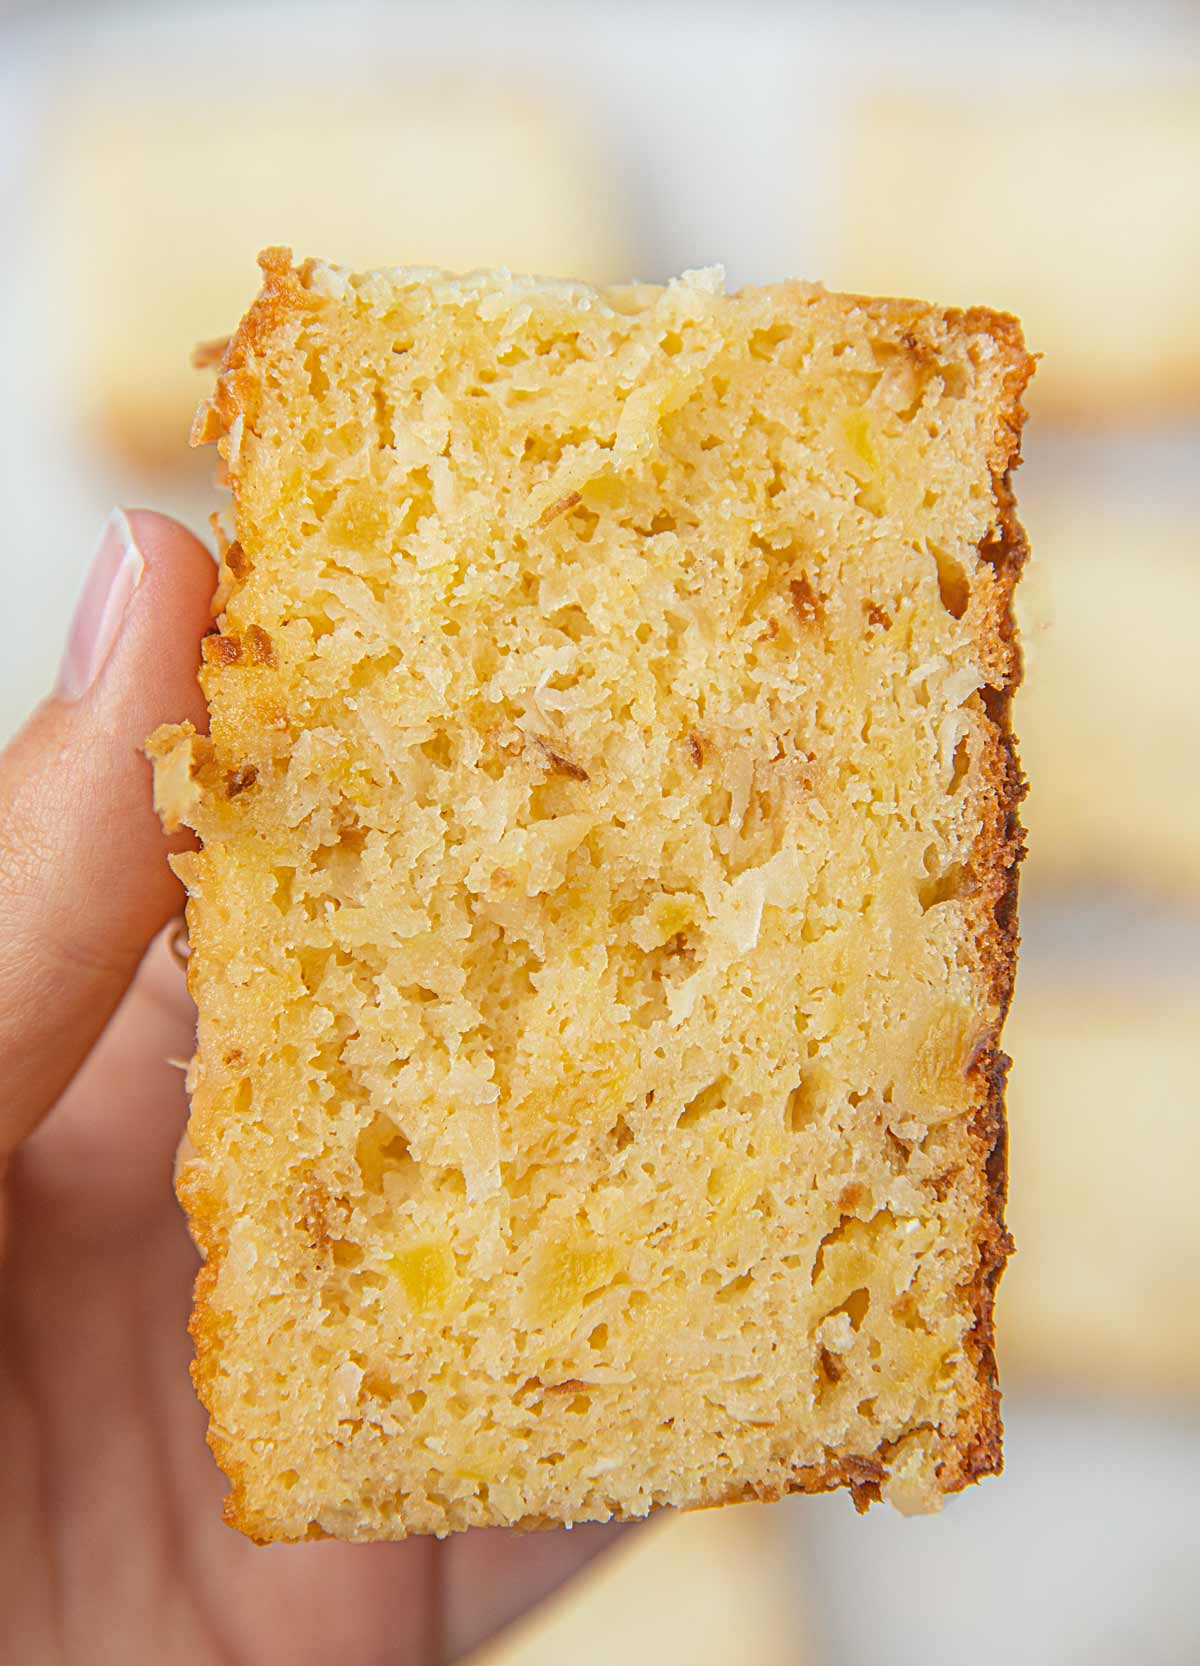 Hand holding slice of Pineapple Coconut Bread